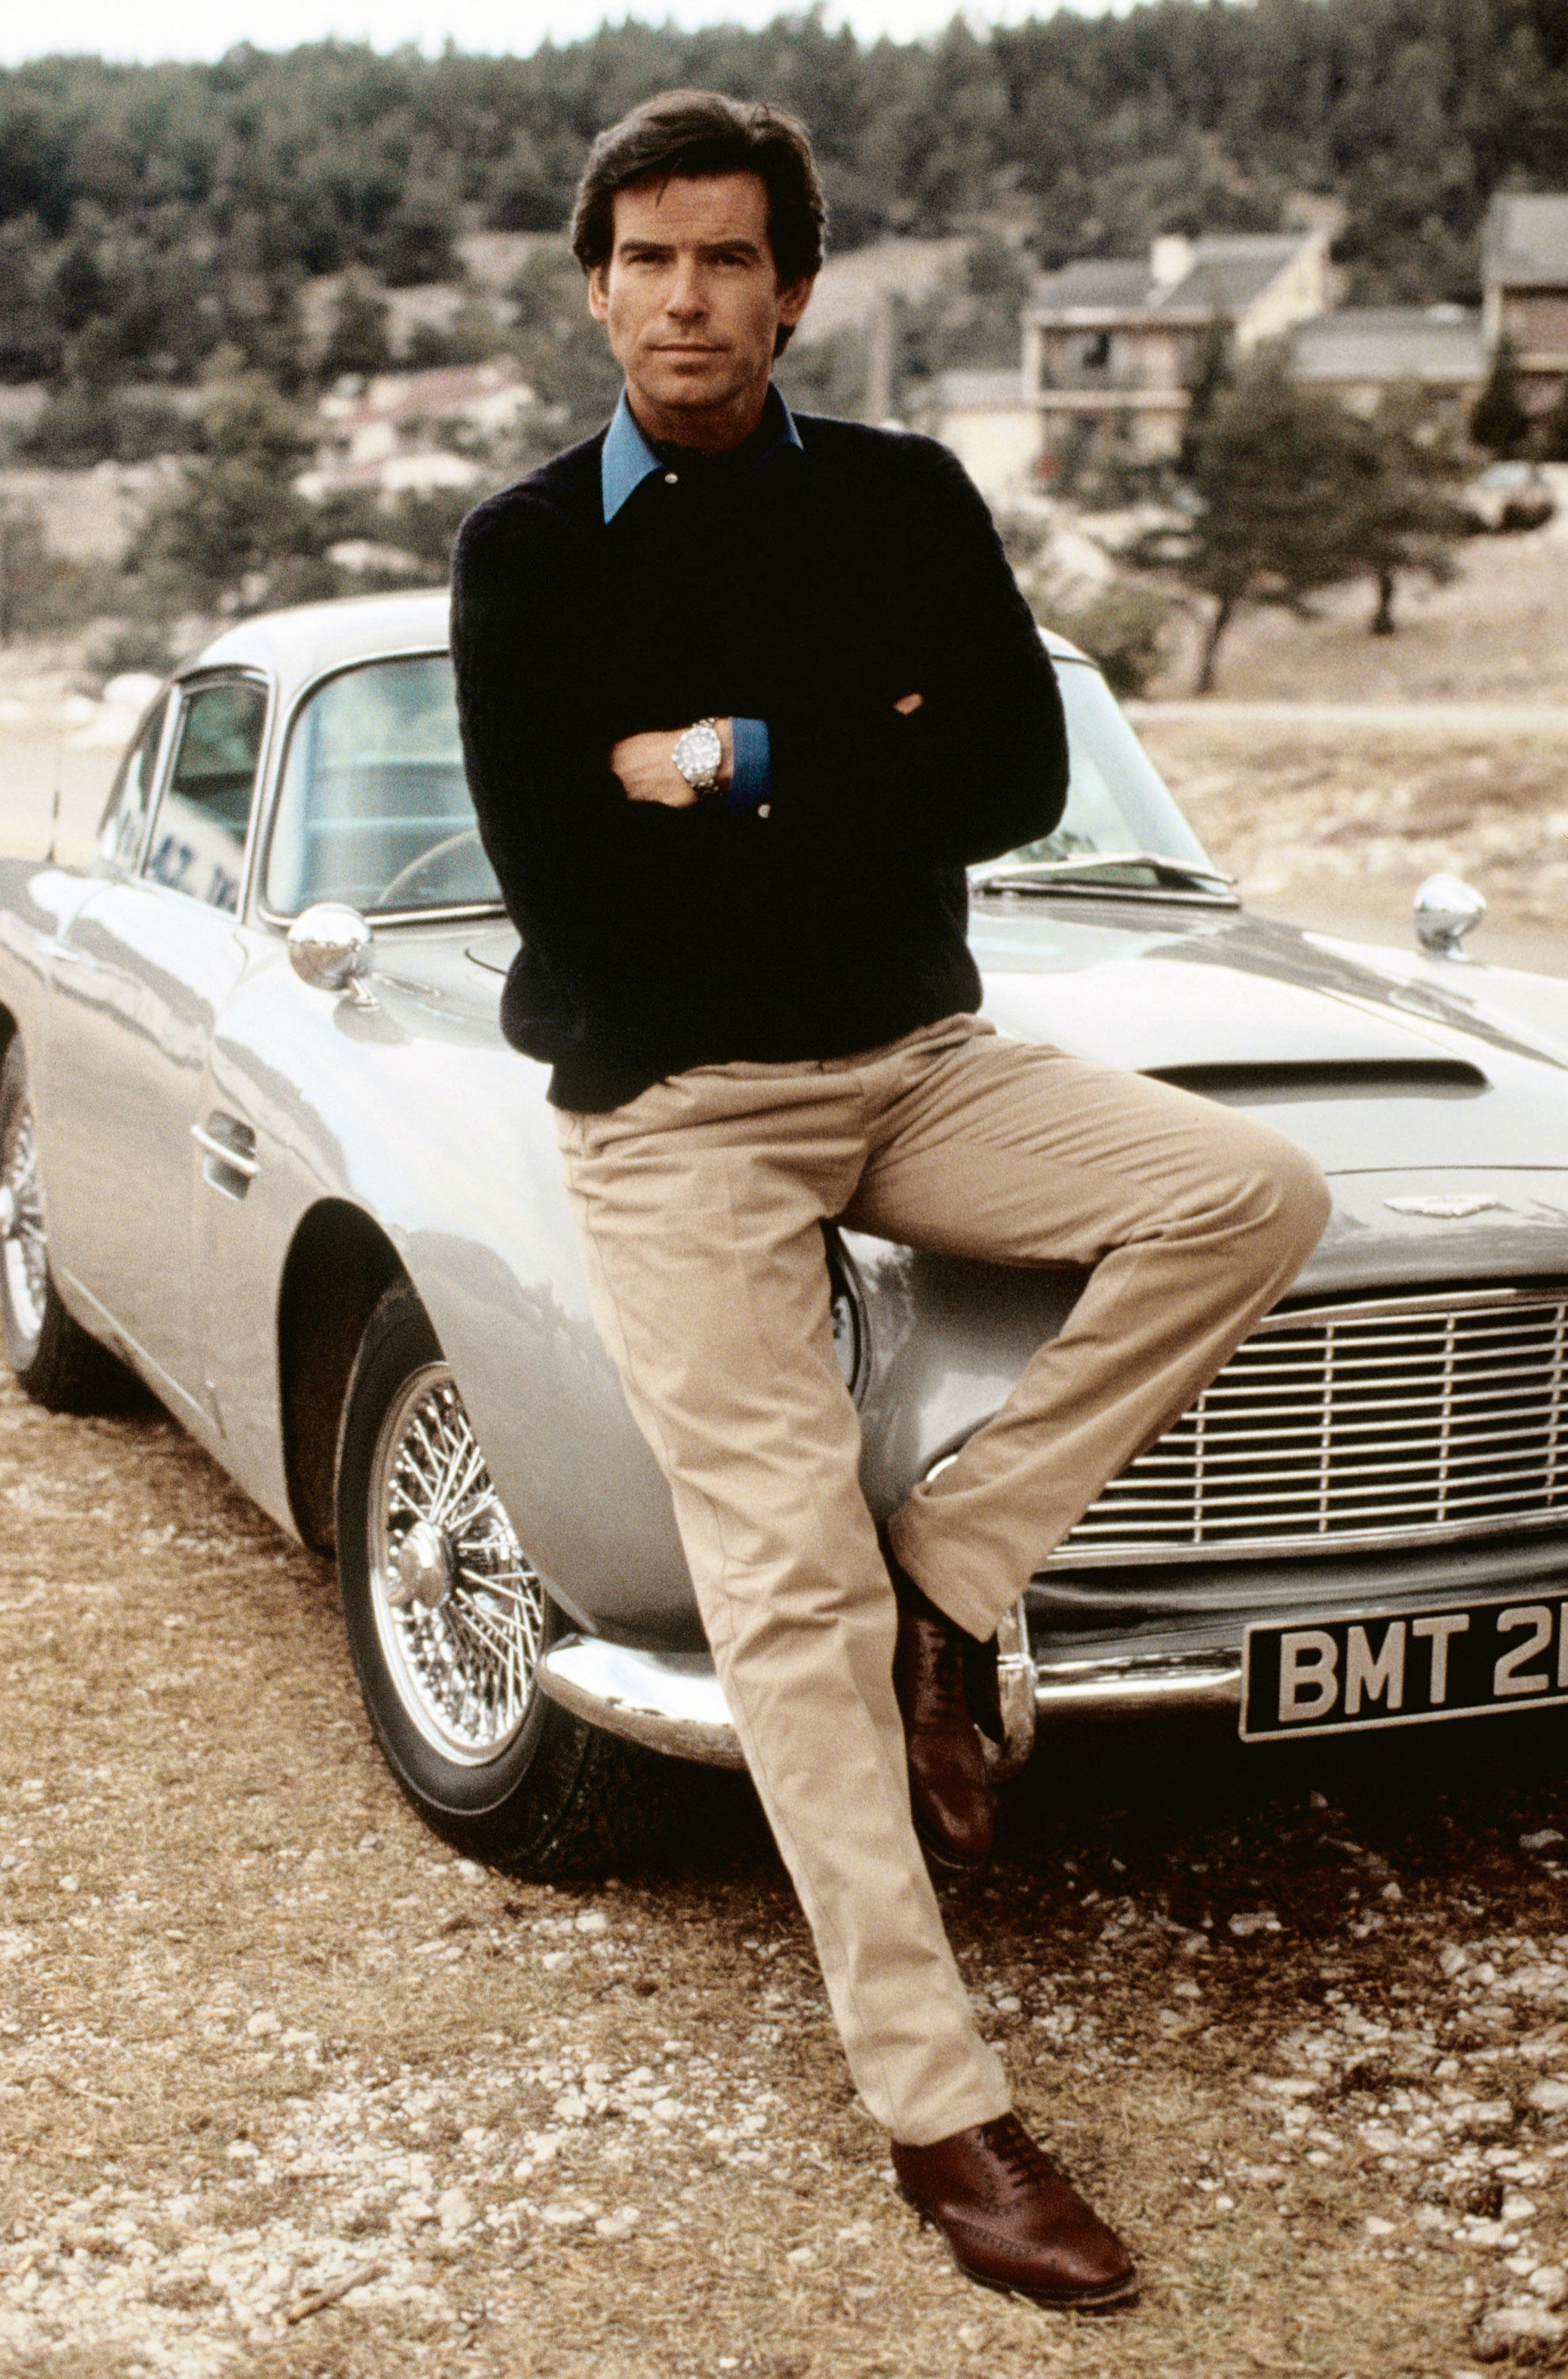 Aston Martin DB5 GoldenEye James Bond